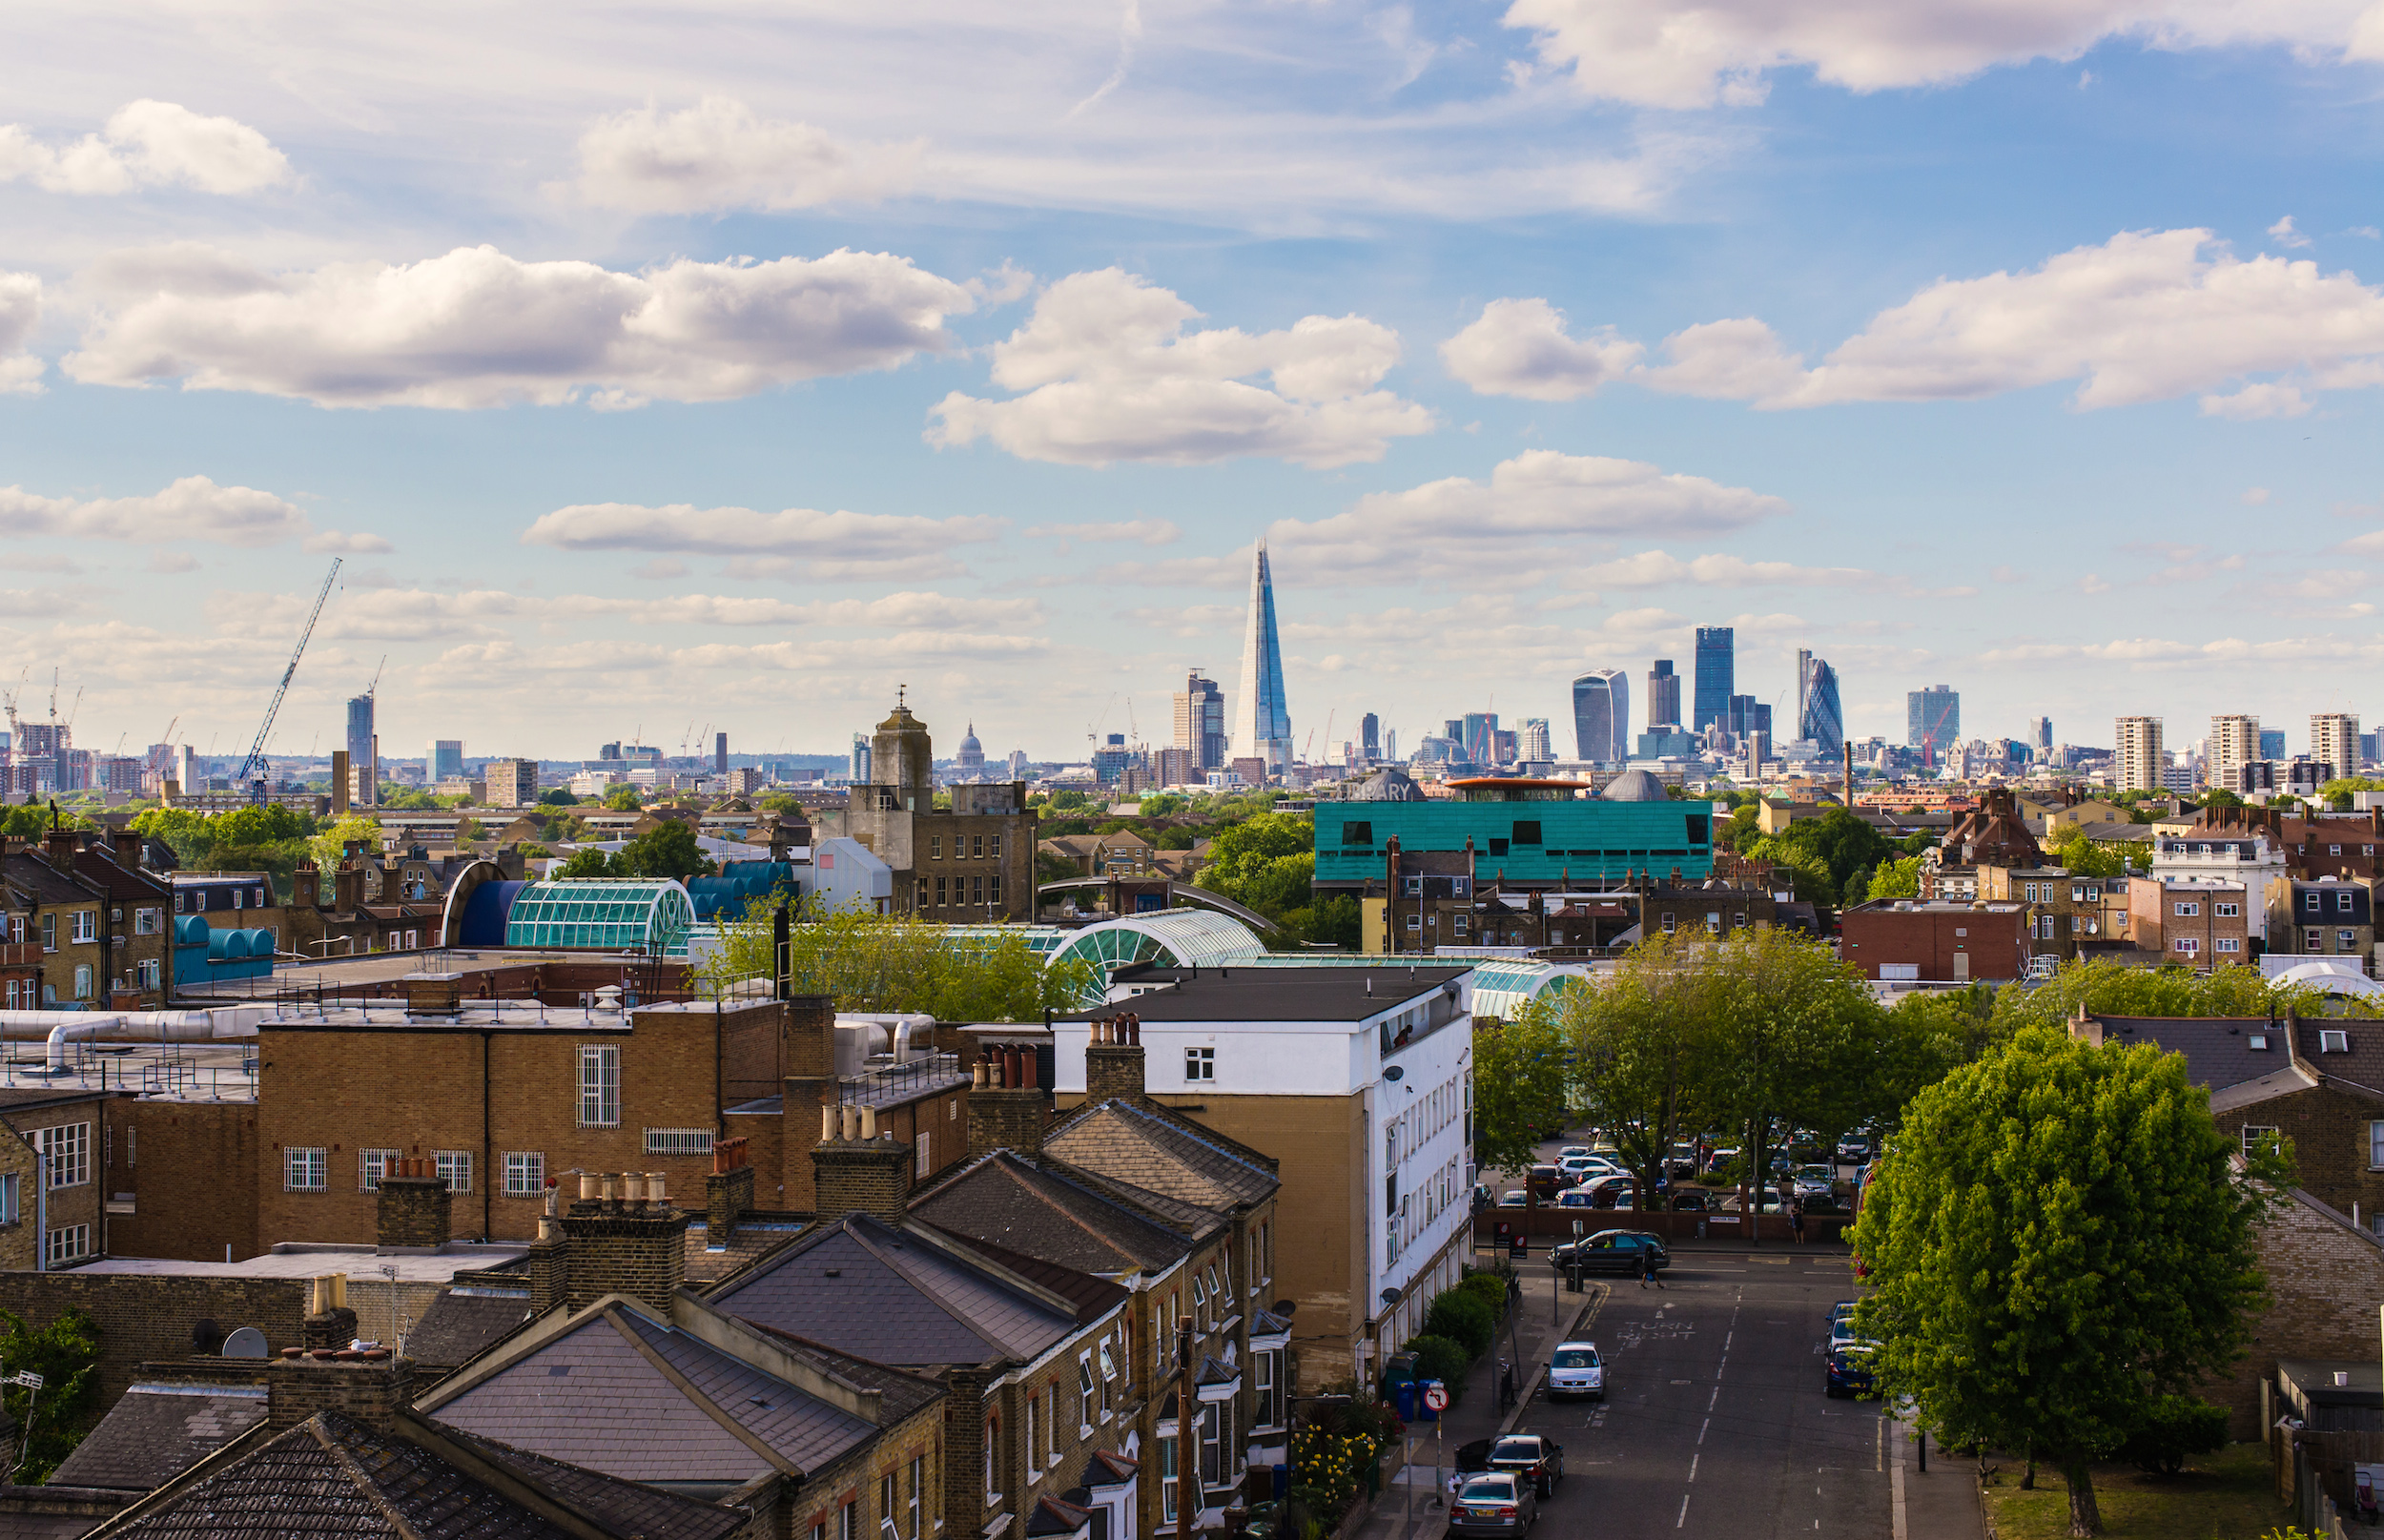 Situated to the south-east of the city, the district of Peckham looks towards the Thames and its iconic landmarks.